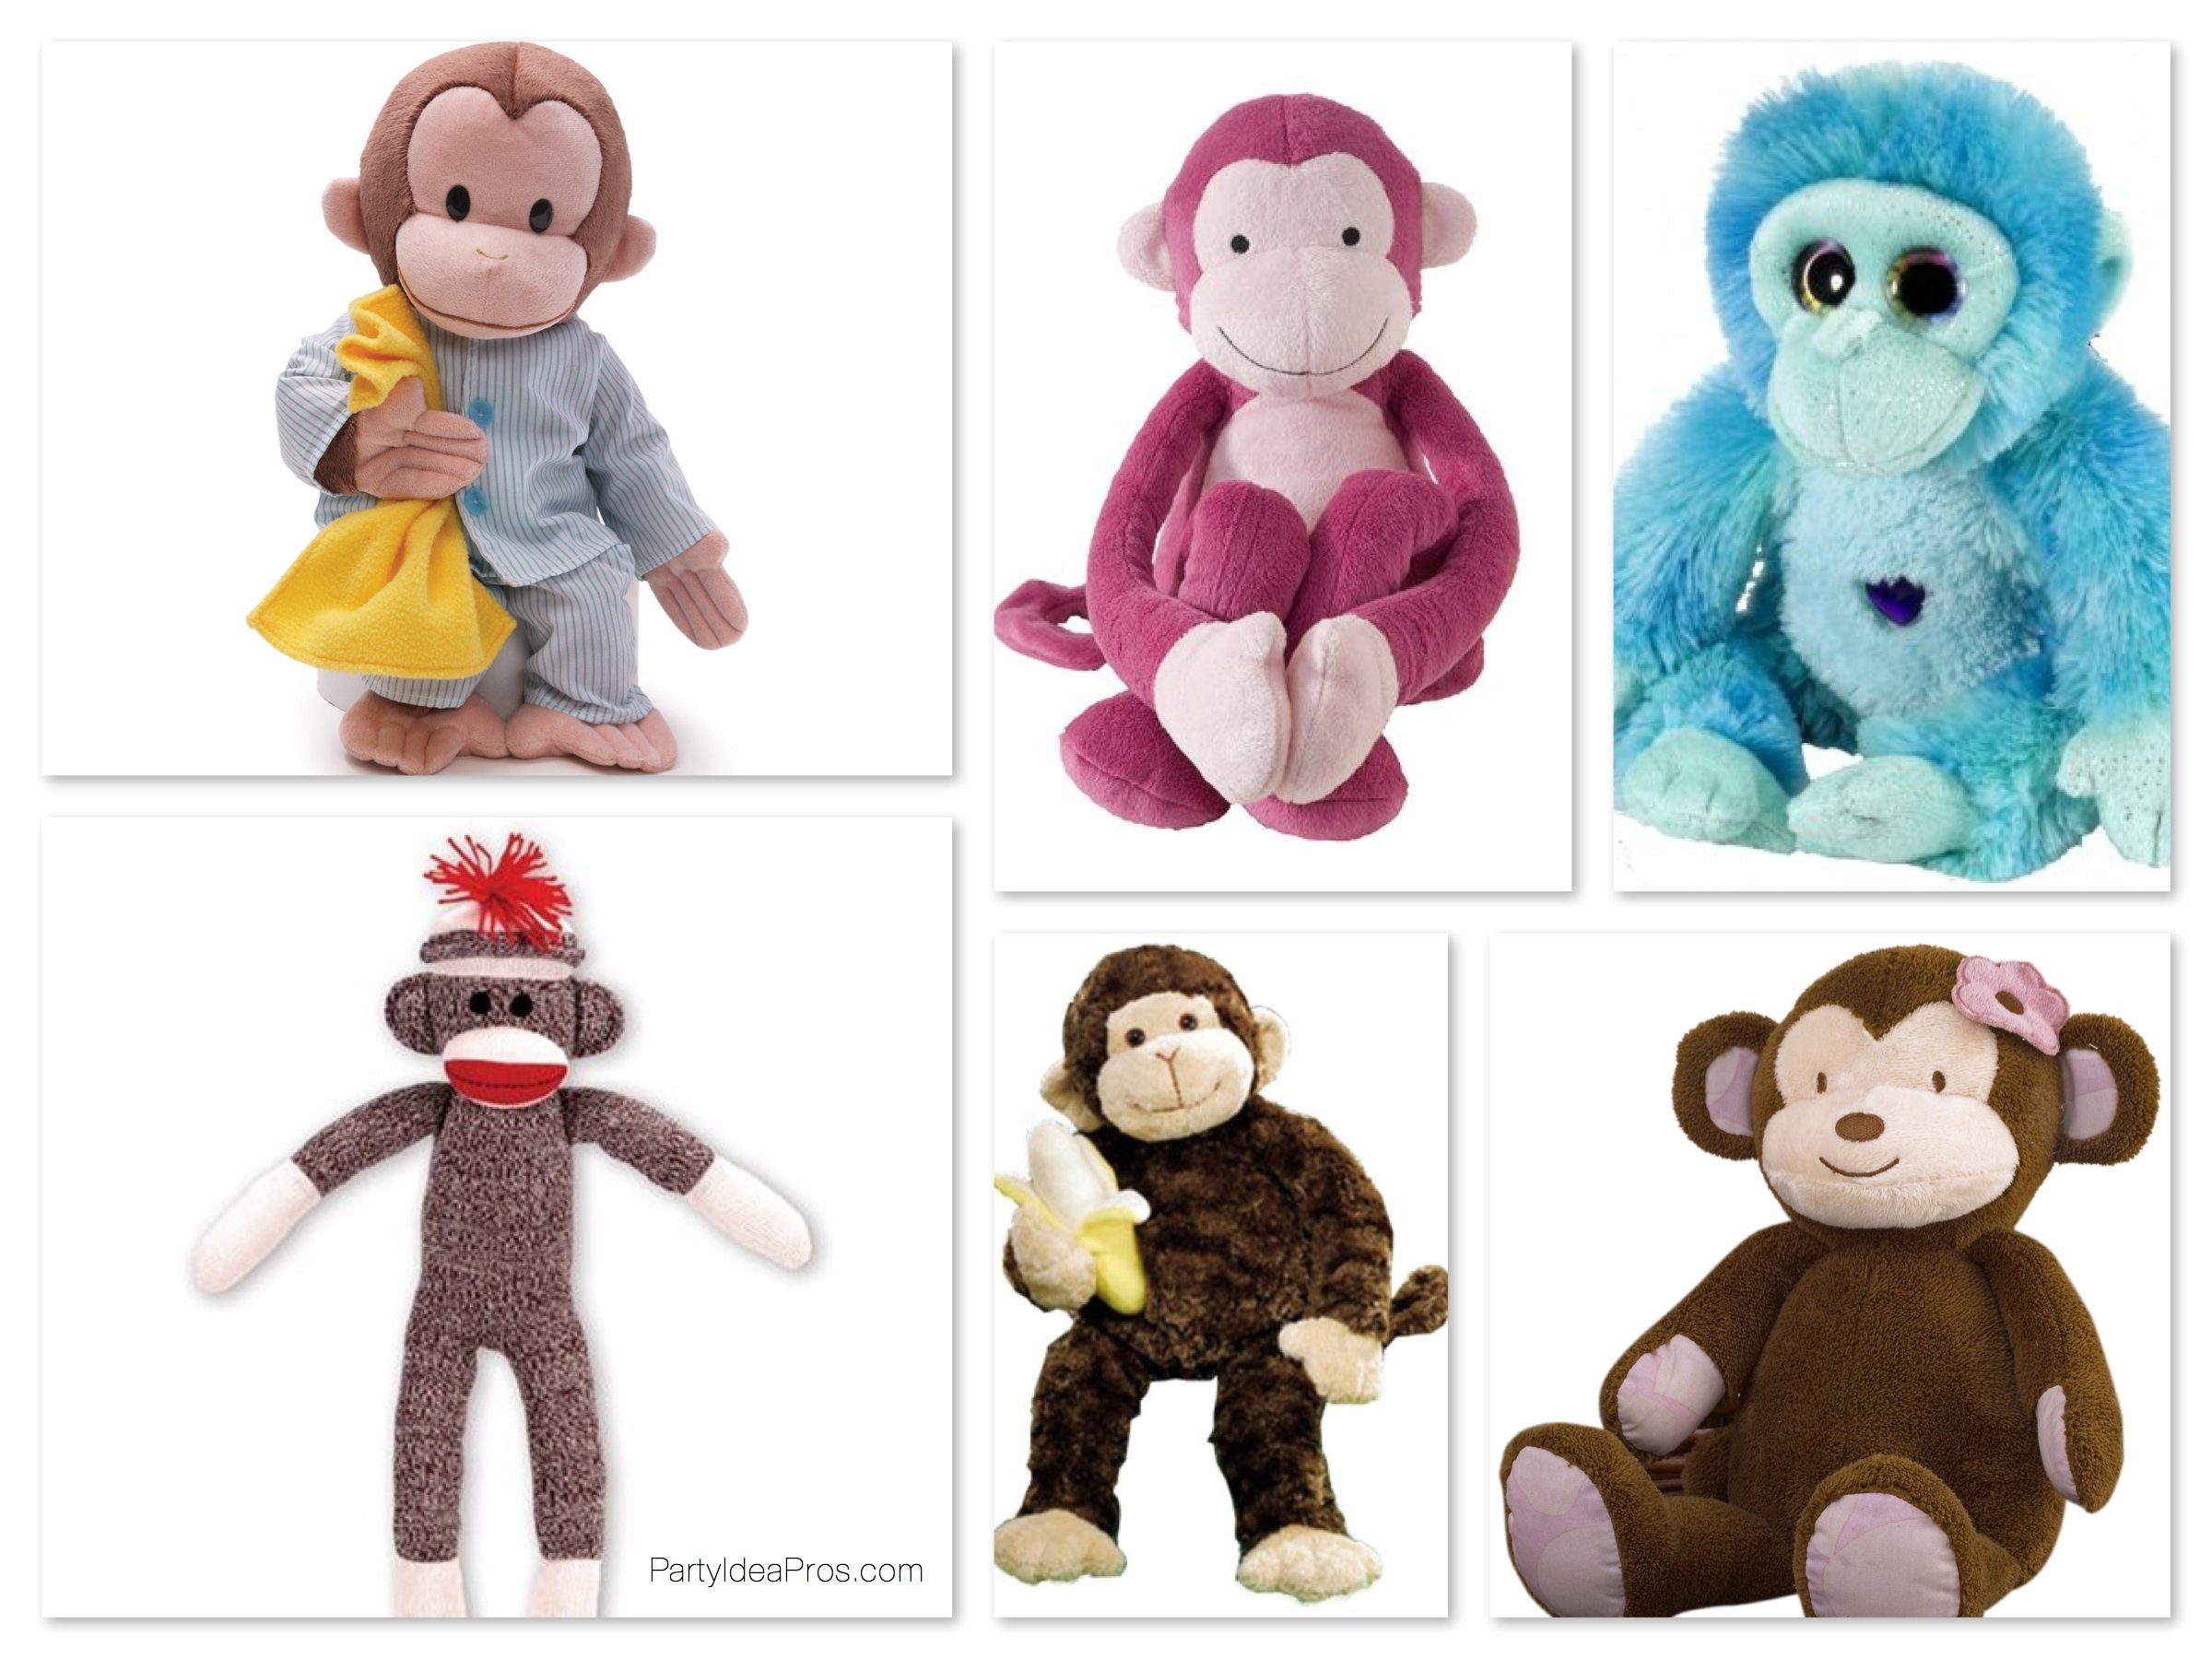 Plush Monkeys